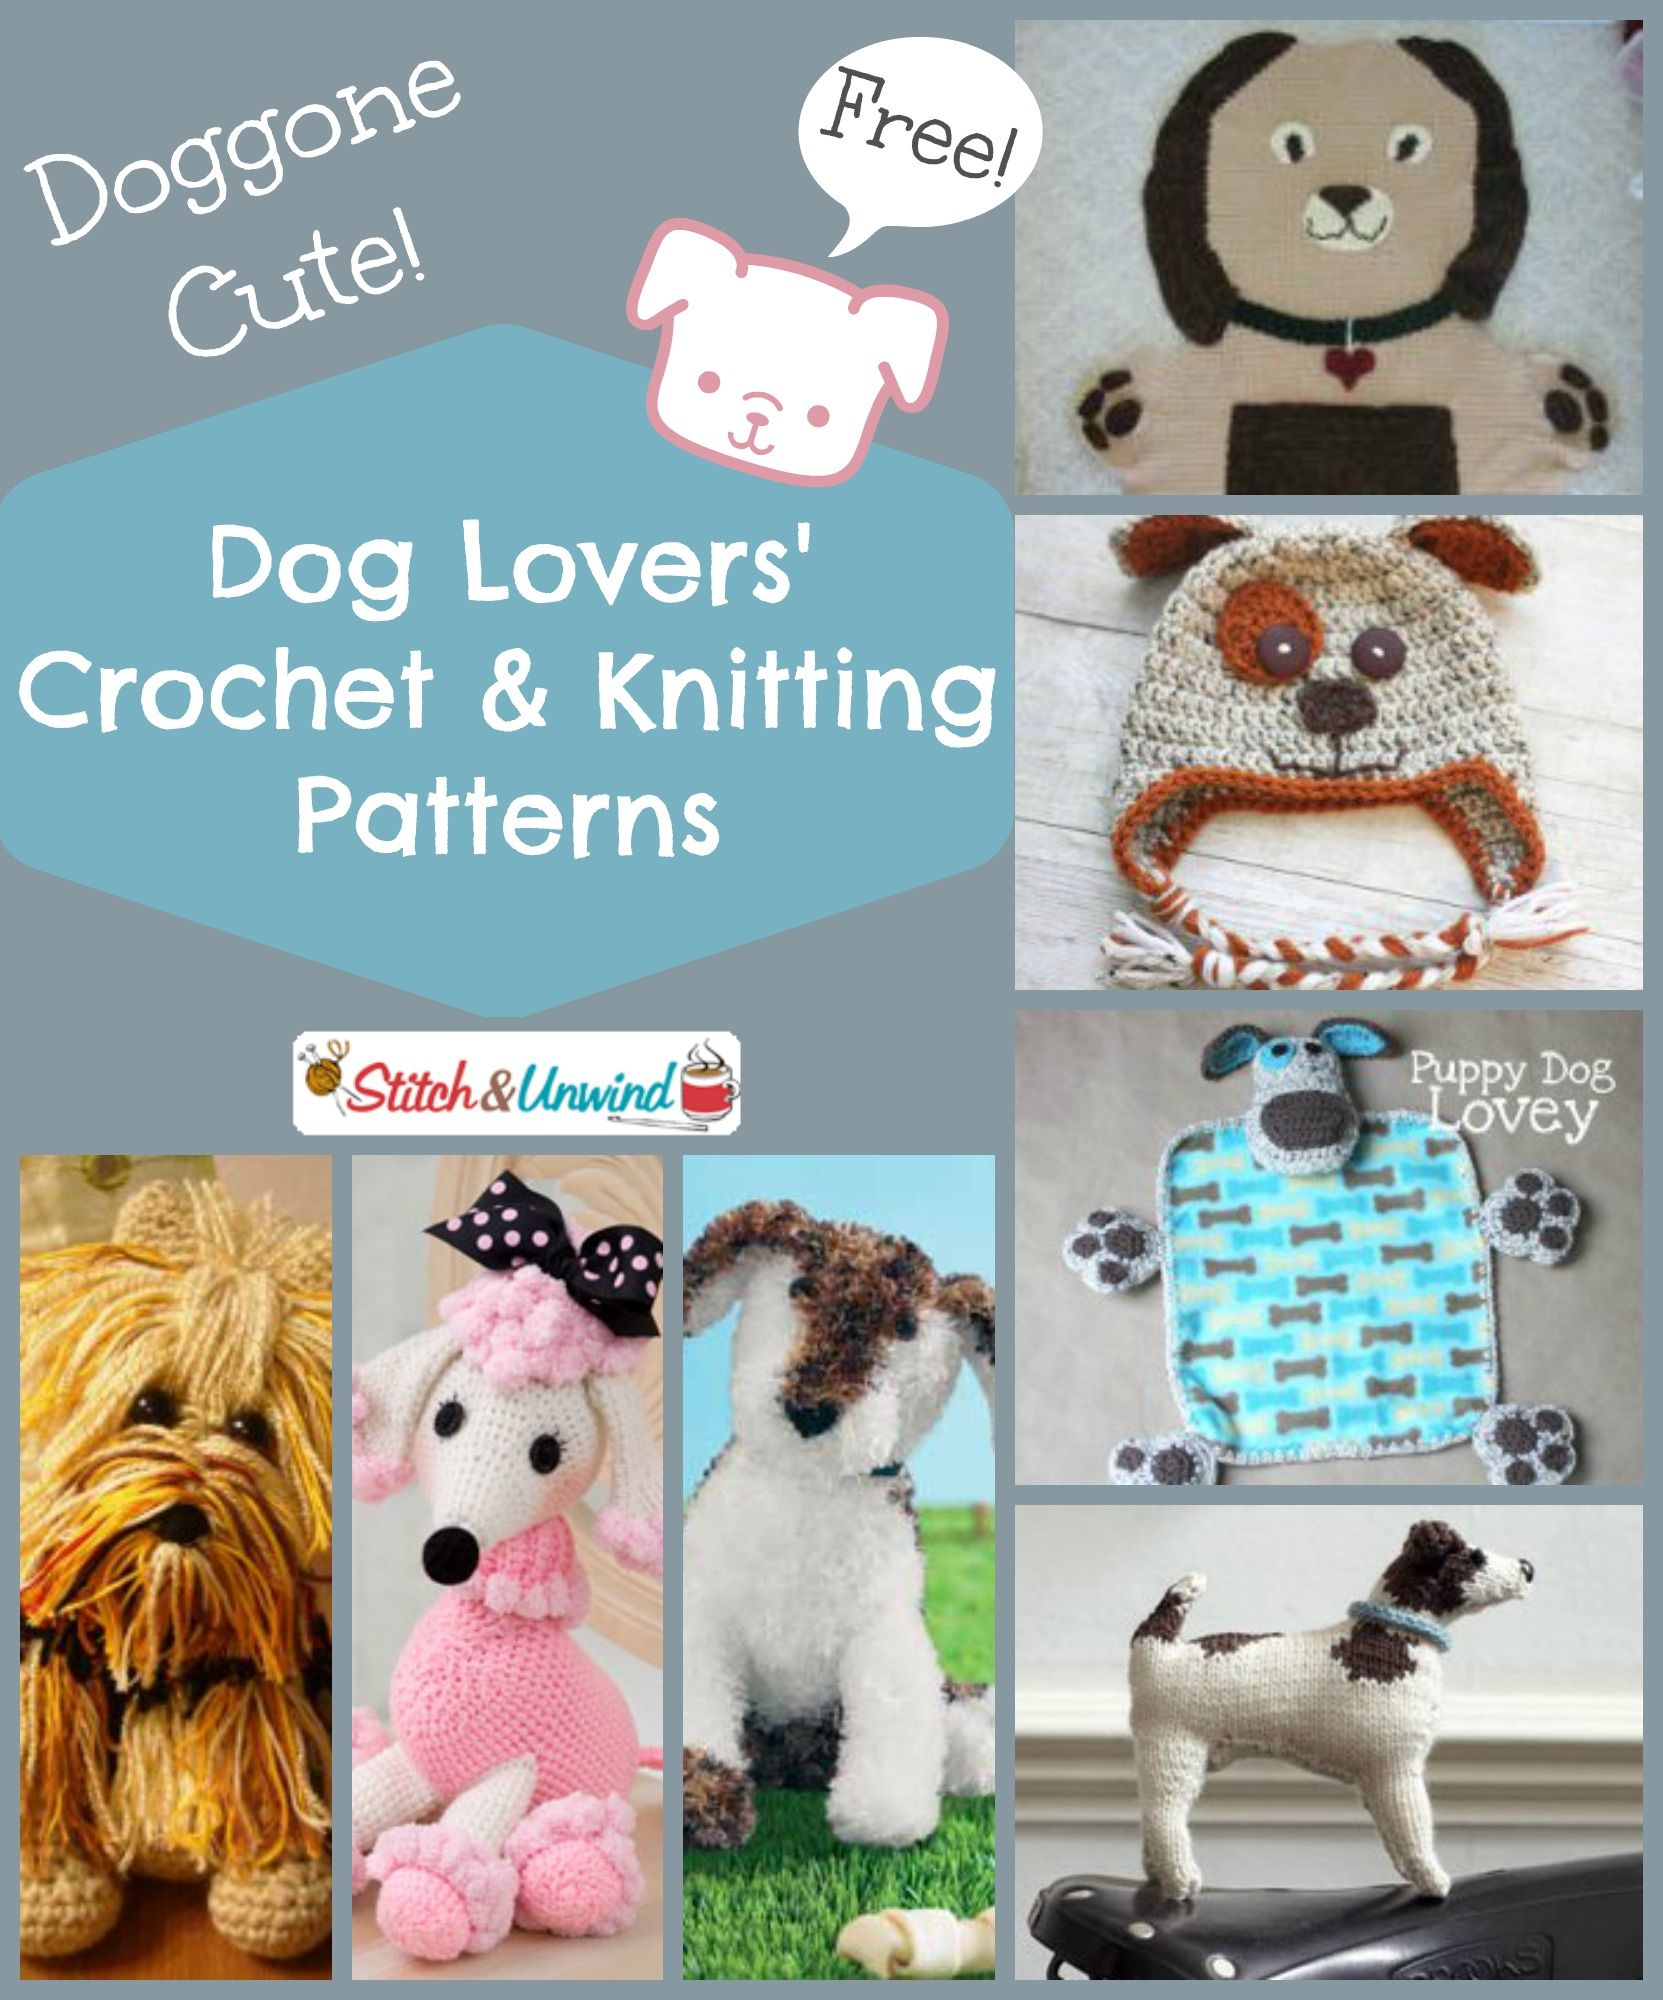 5b6caa698 Doggone Cute! Dog Lovers  Crochet and Knitting Pattern Round-Up ...